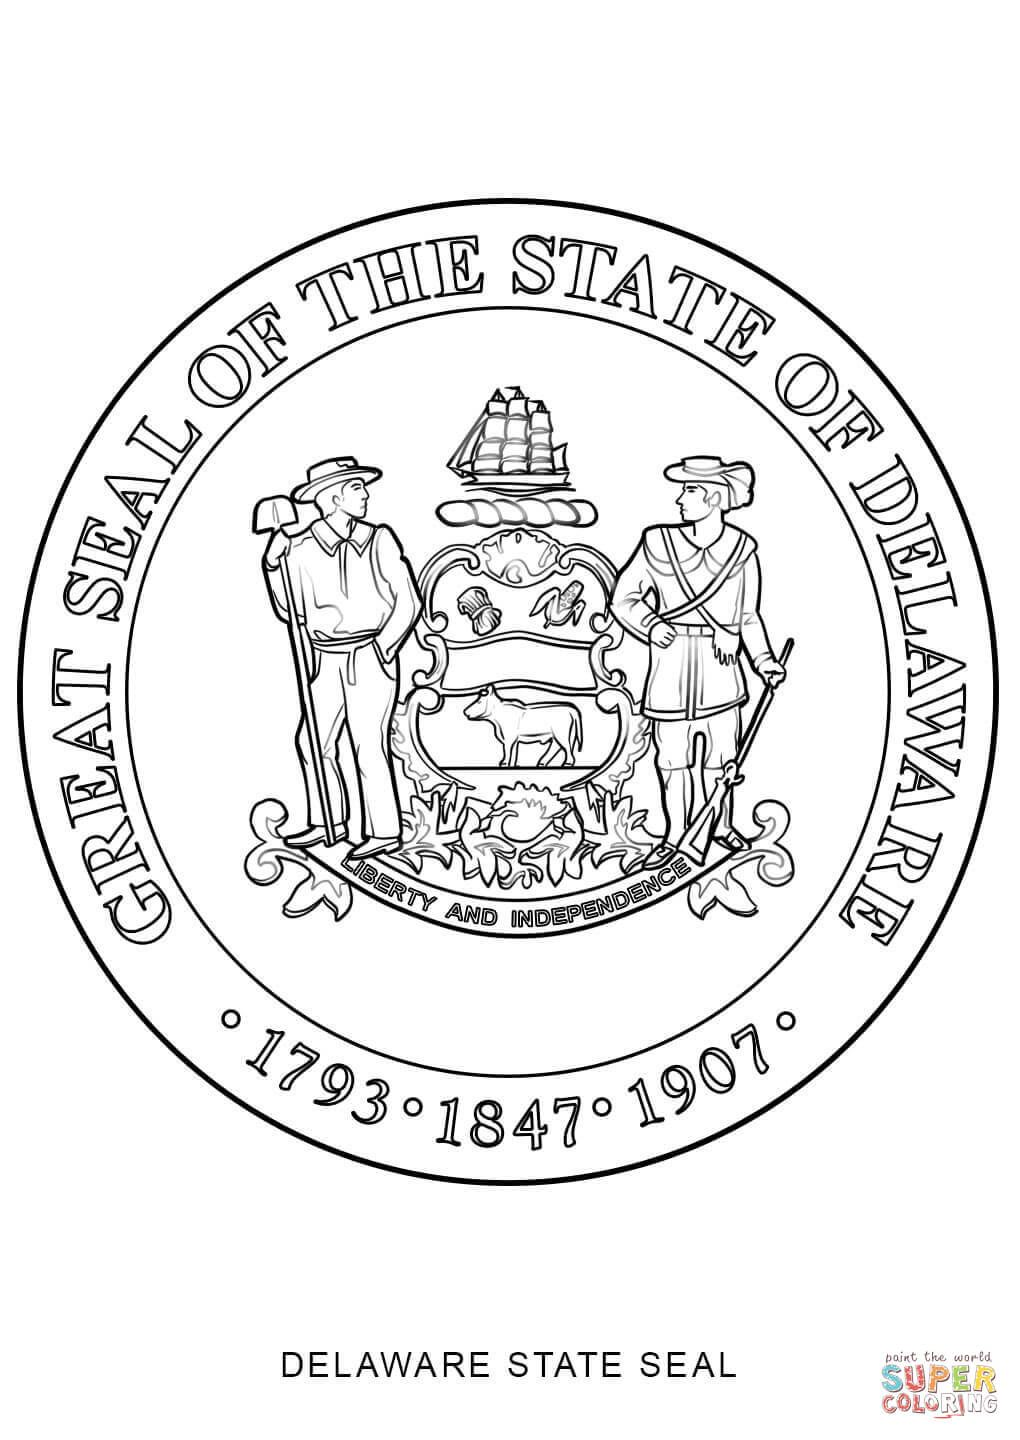 new jersey state seal coloring page click the delaware state seal coloring pages to view new page jersey coloring state seal